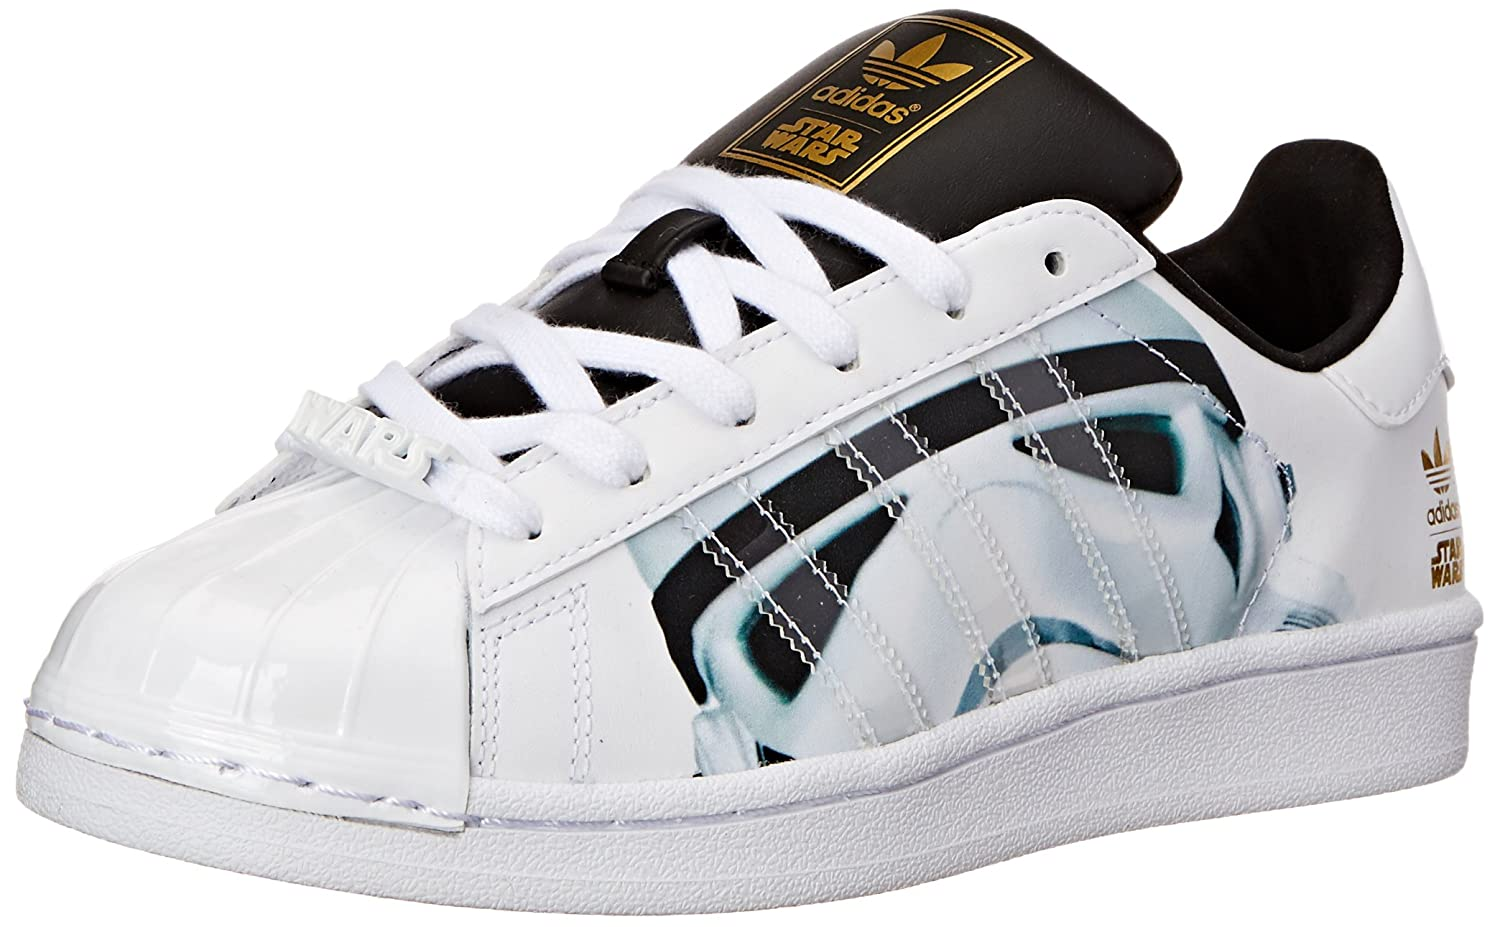 adidas Originals Superstar Stormtrooper J Lifestyle Basketball Shoe (Big Kid) adidas originals superstar foundation c shoe little kid